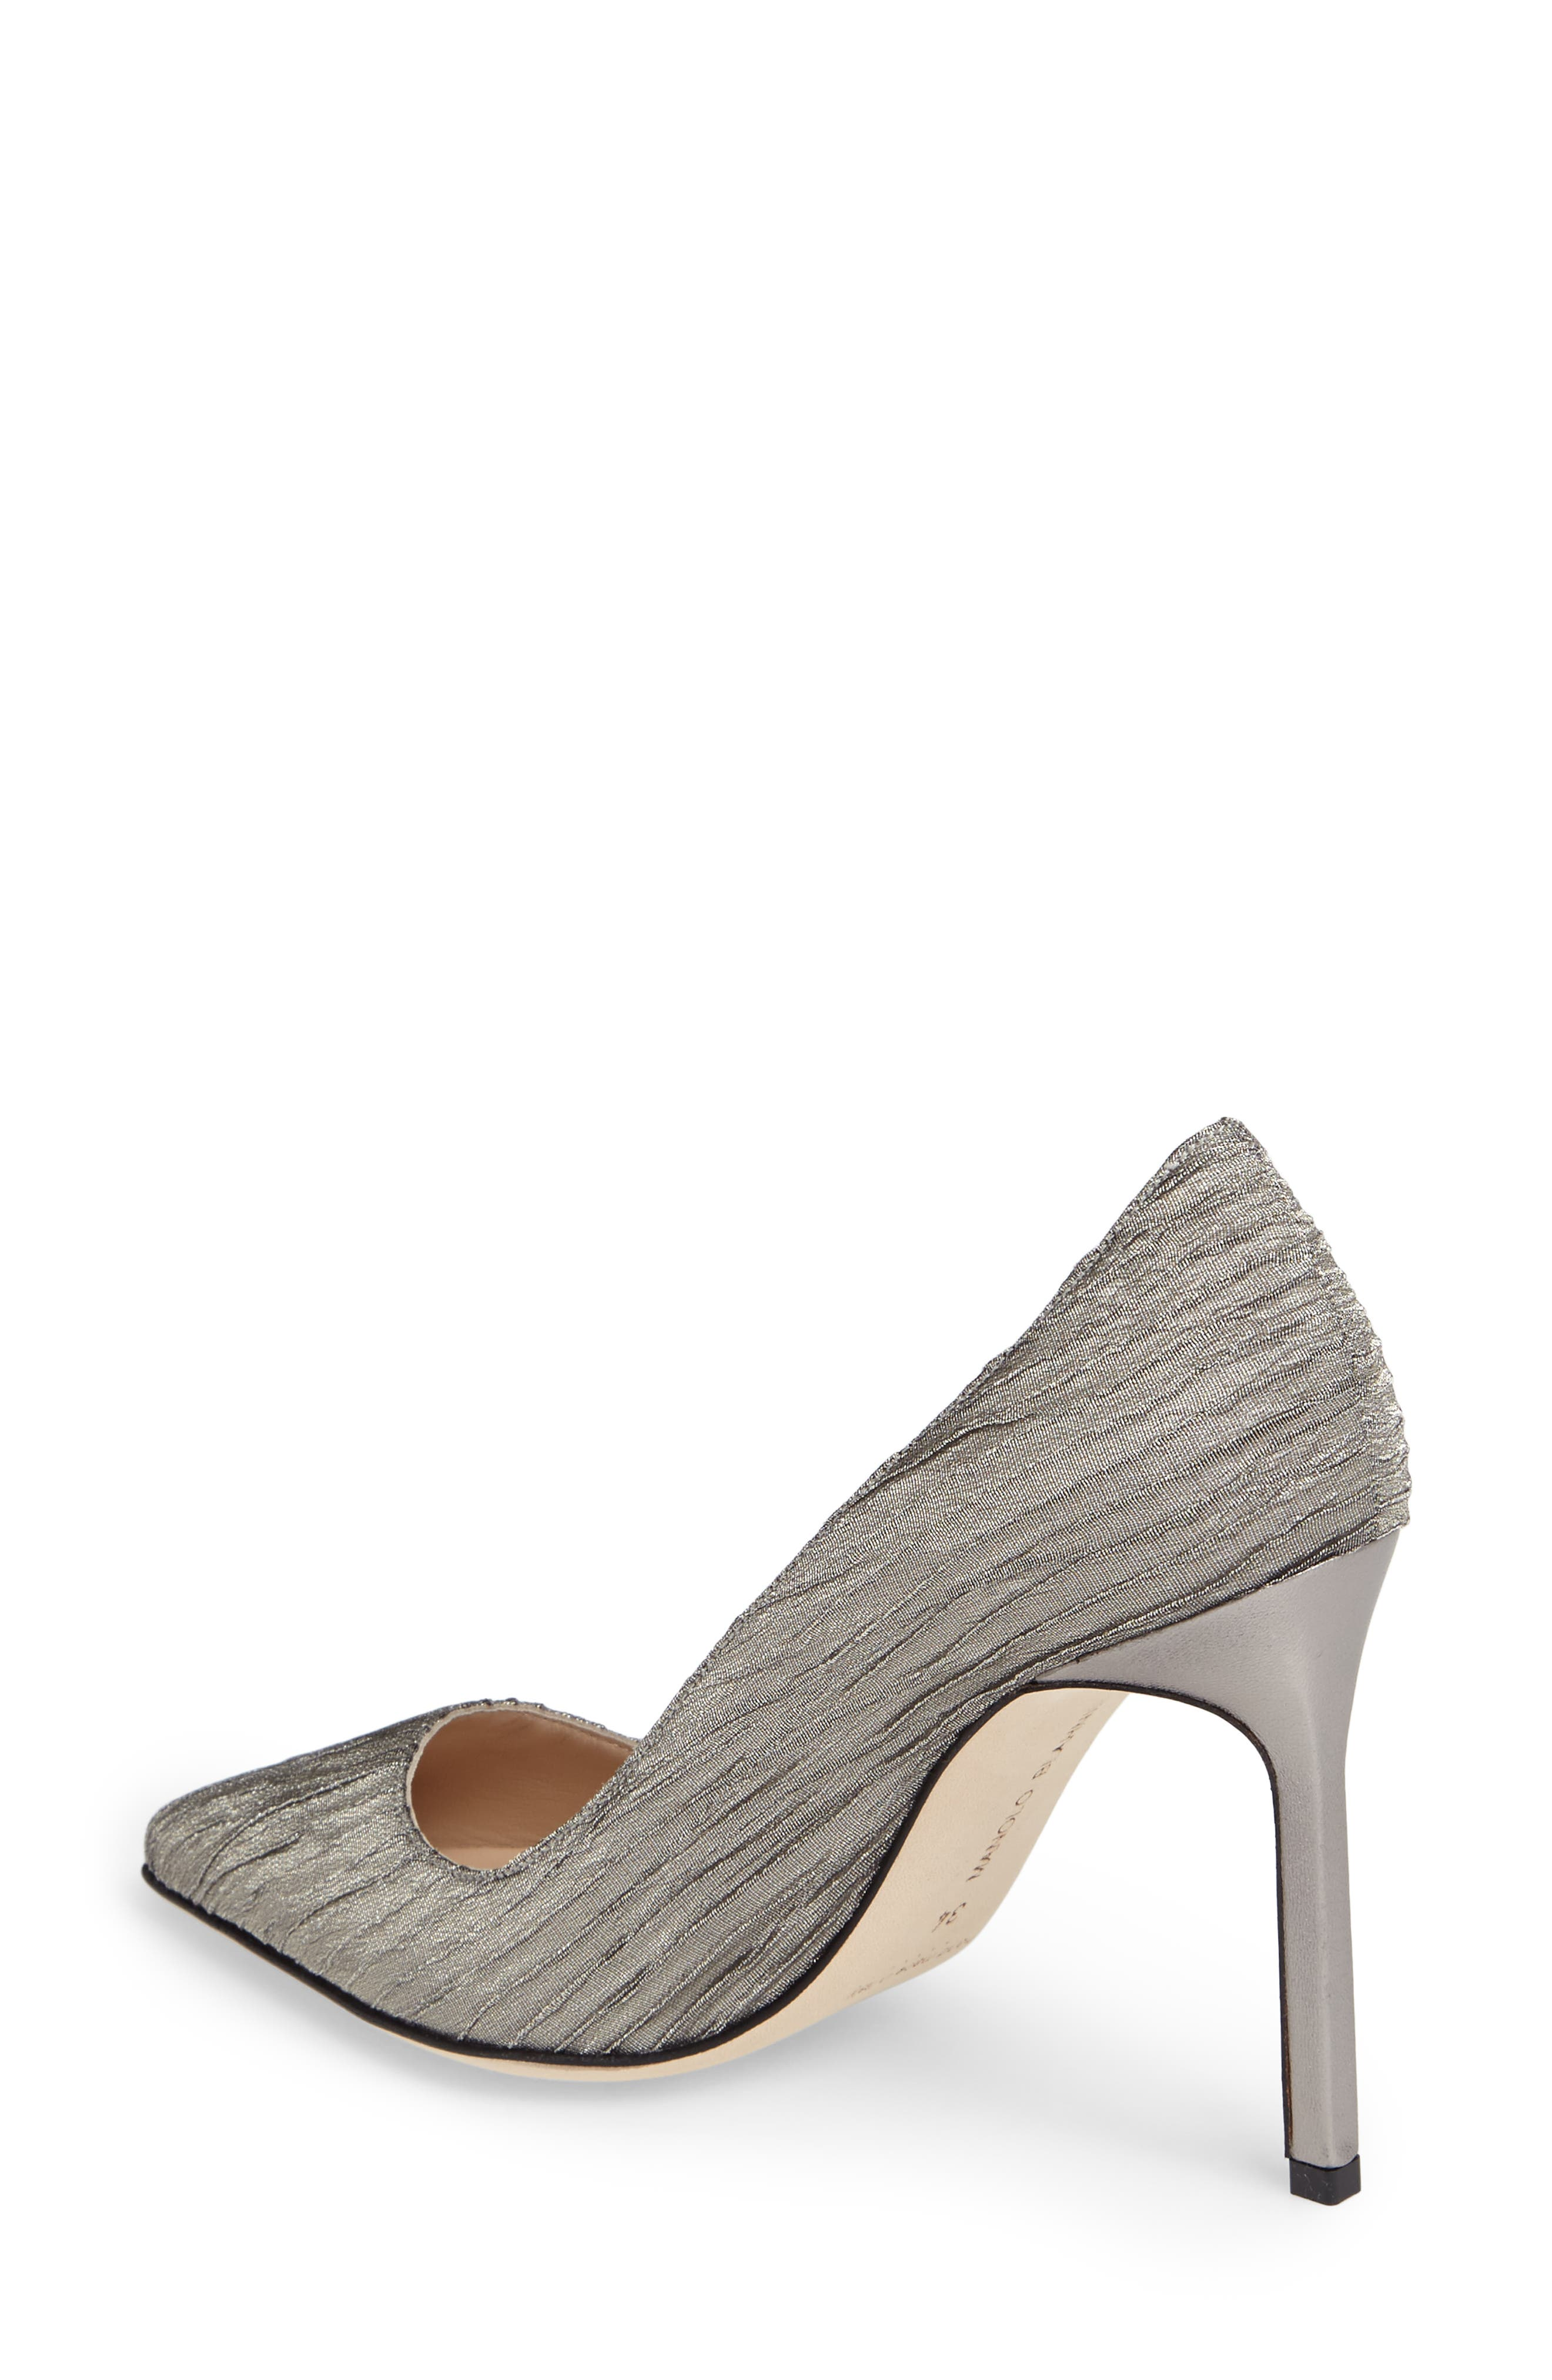 BB Pointy Toe Pump,                             Alternate thumbnail 21, color,